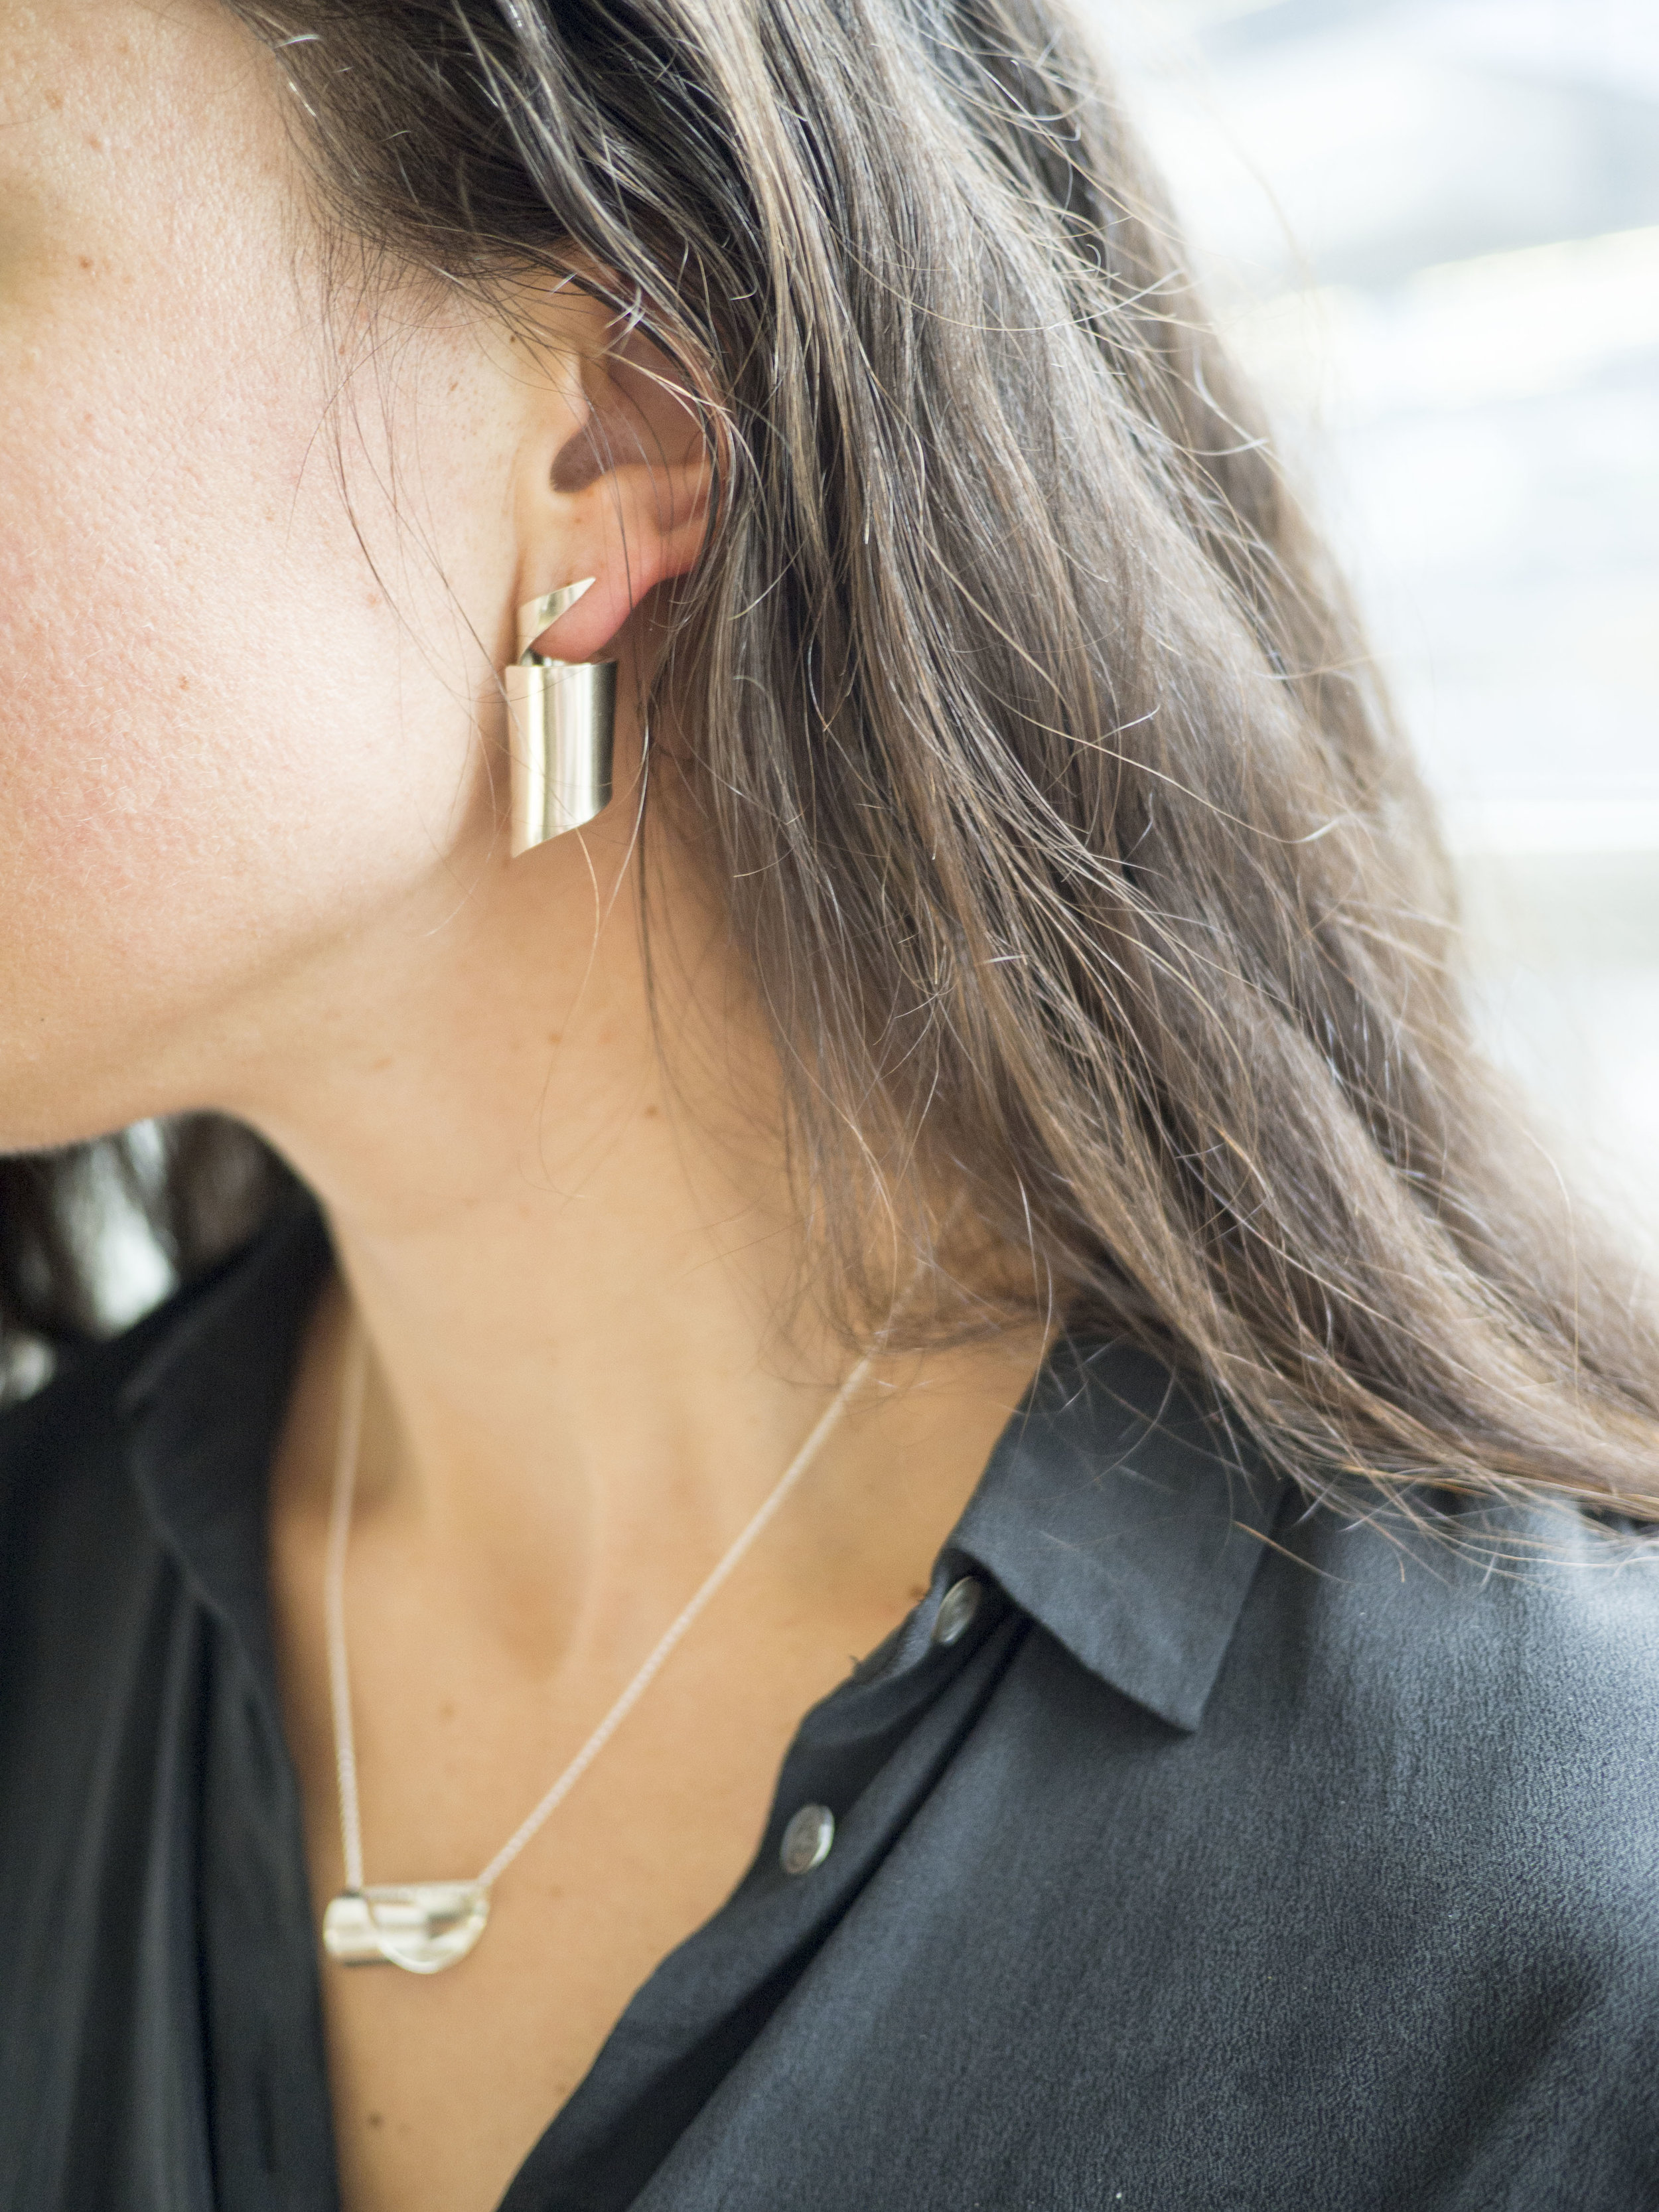 These post earrings can be swapped between your left and right ears for a slightly different effect.